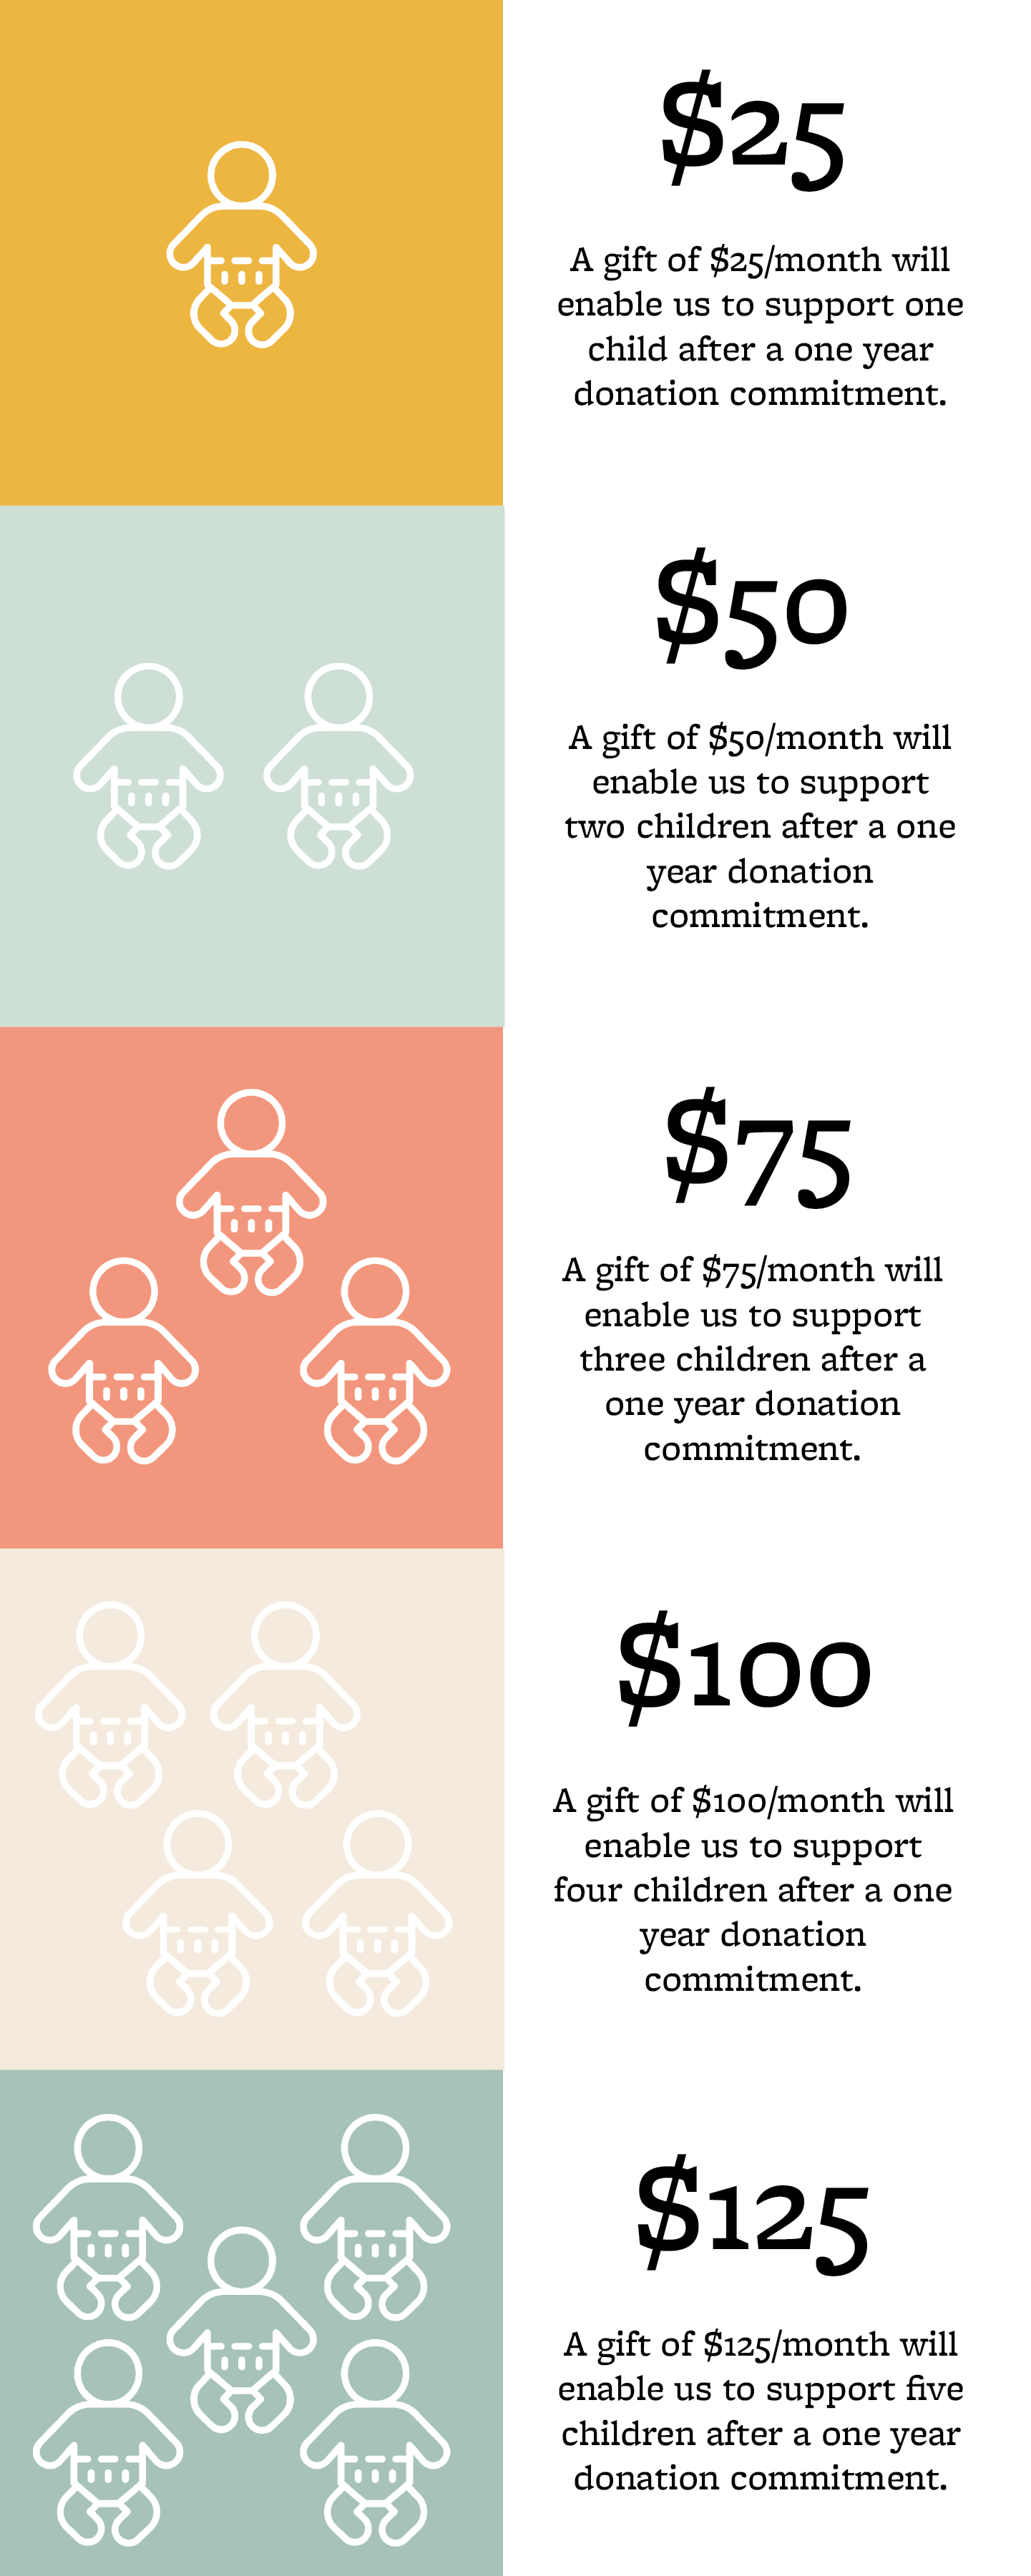 $25 each month supports one baby after a one year's donation commitment